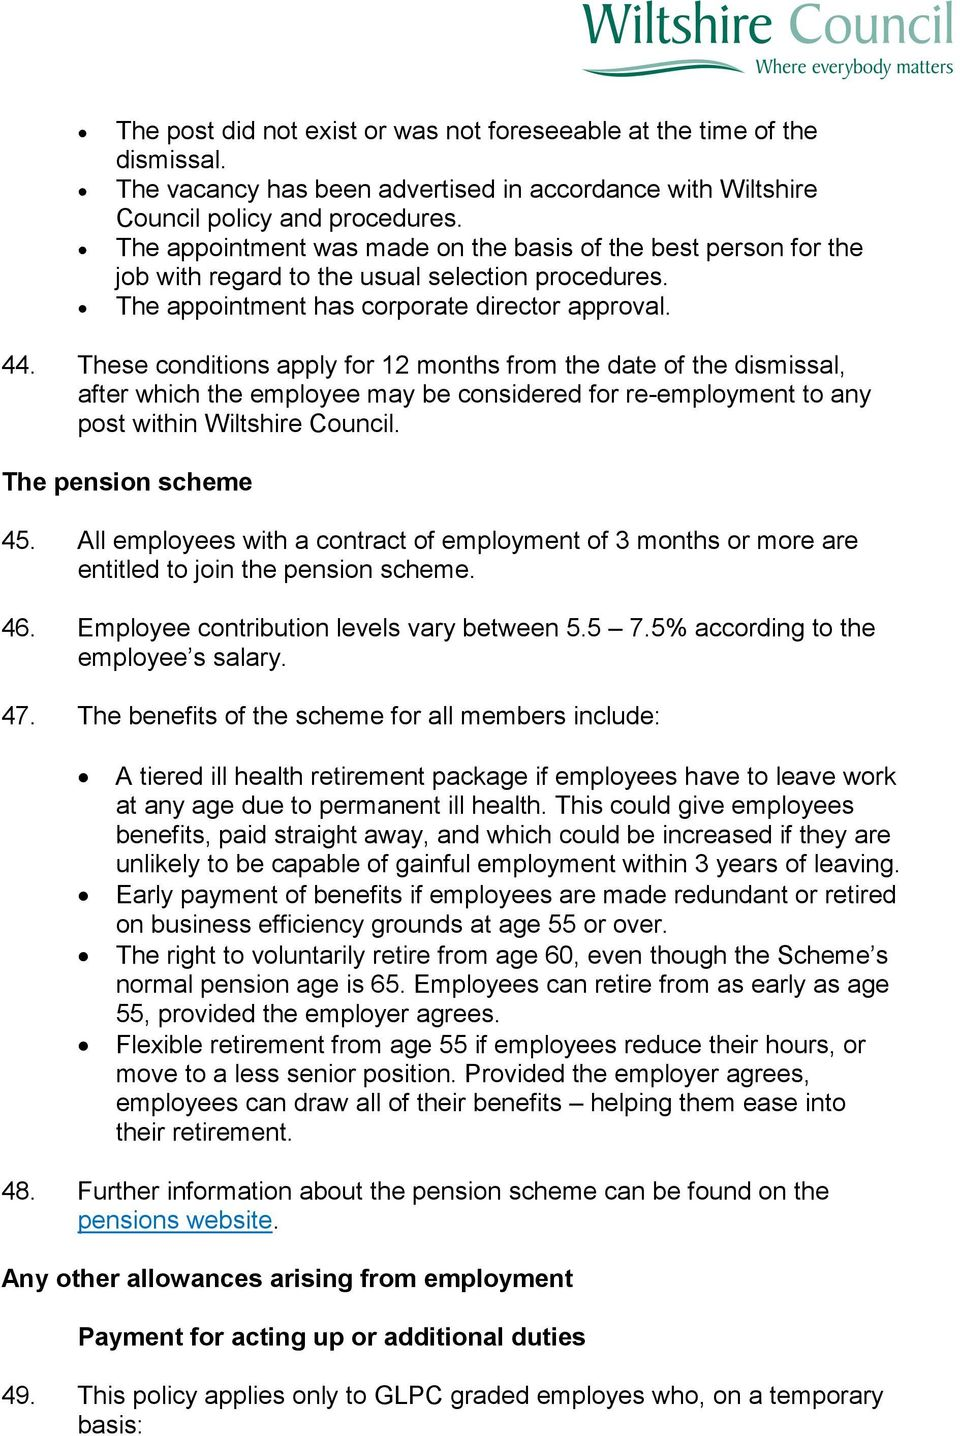 These conditions apply for 12 months from the date of the dismissal, after which the employee may be considered for re-employment to any post within Wiltshire Council. The pension scheme 45.